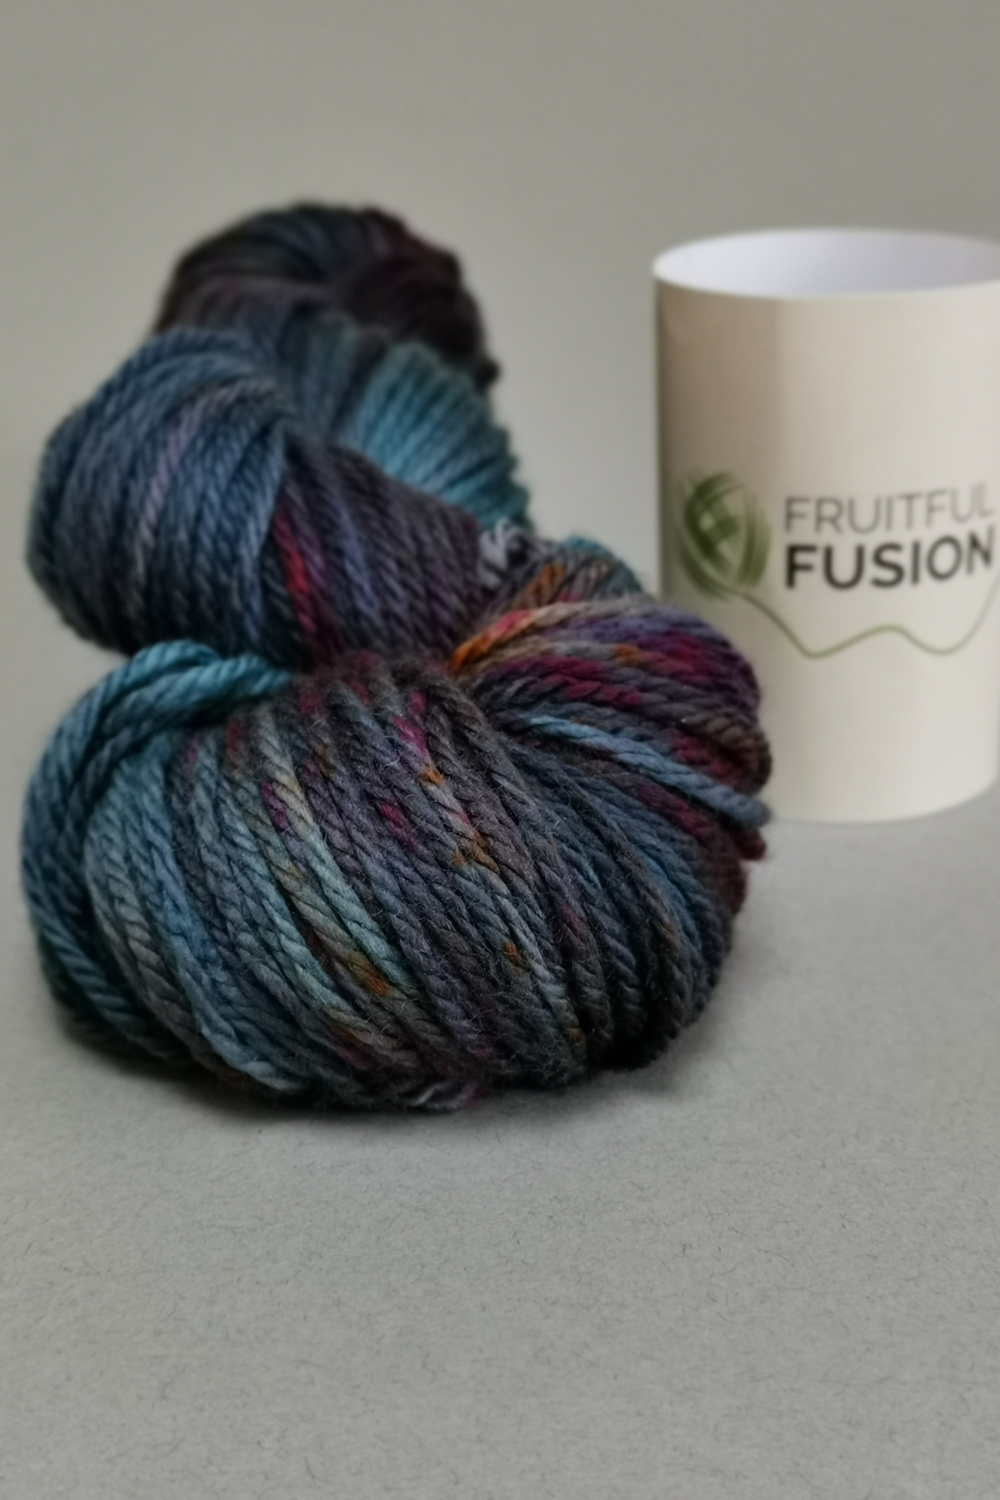 grey background with a skein of plum yarn from Fruitful Fusion.  Mid bluey purple with flashes of burnt orange, marroon and brown speckles.